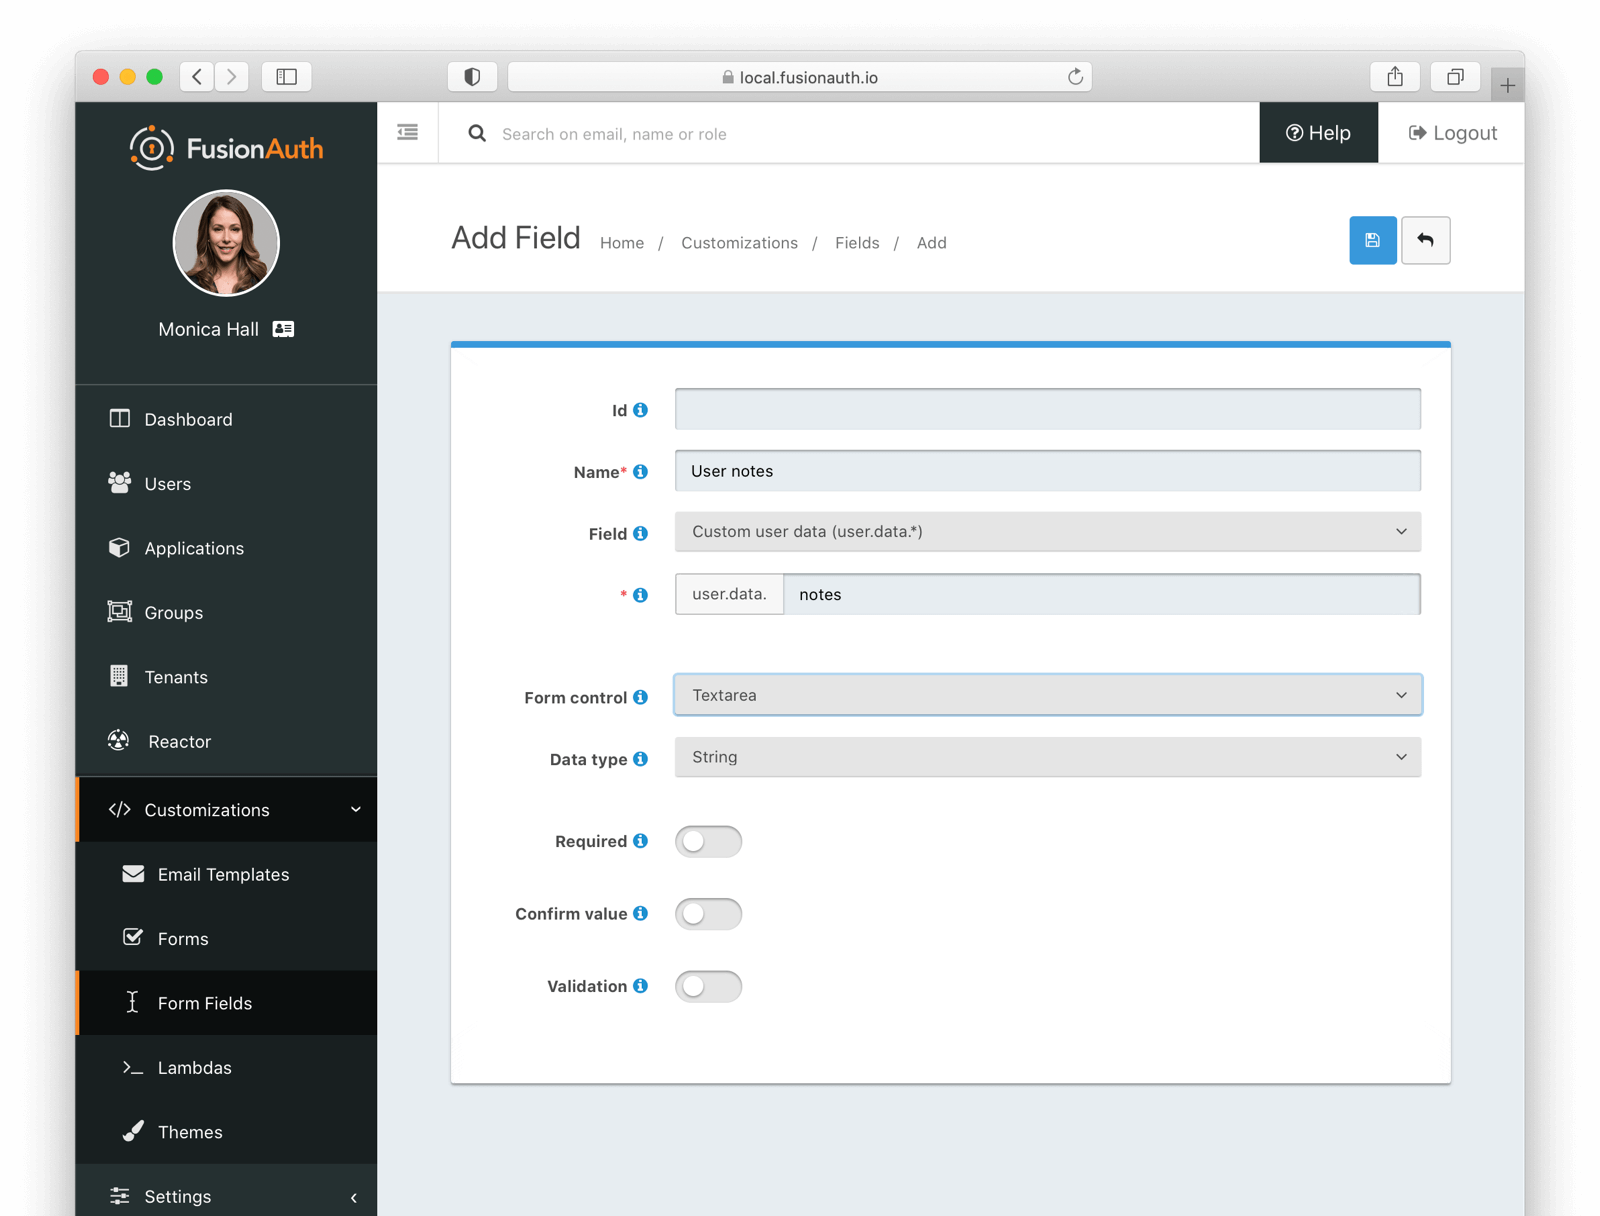 Adding a custom form field.